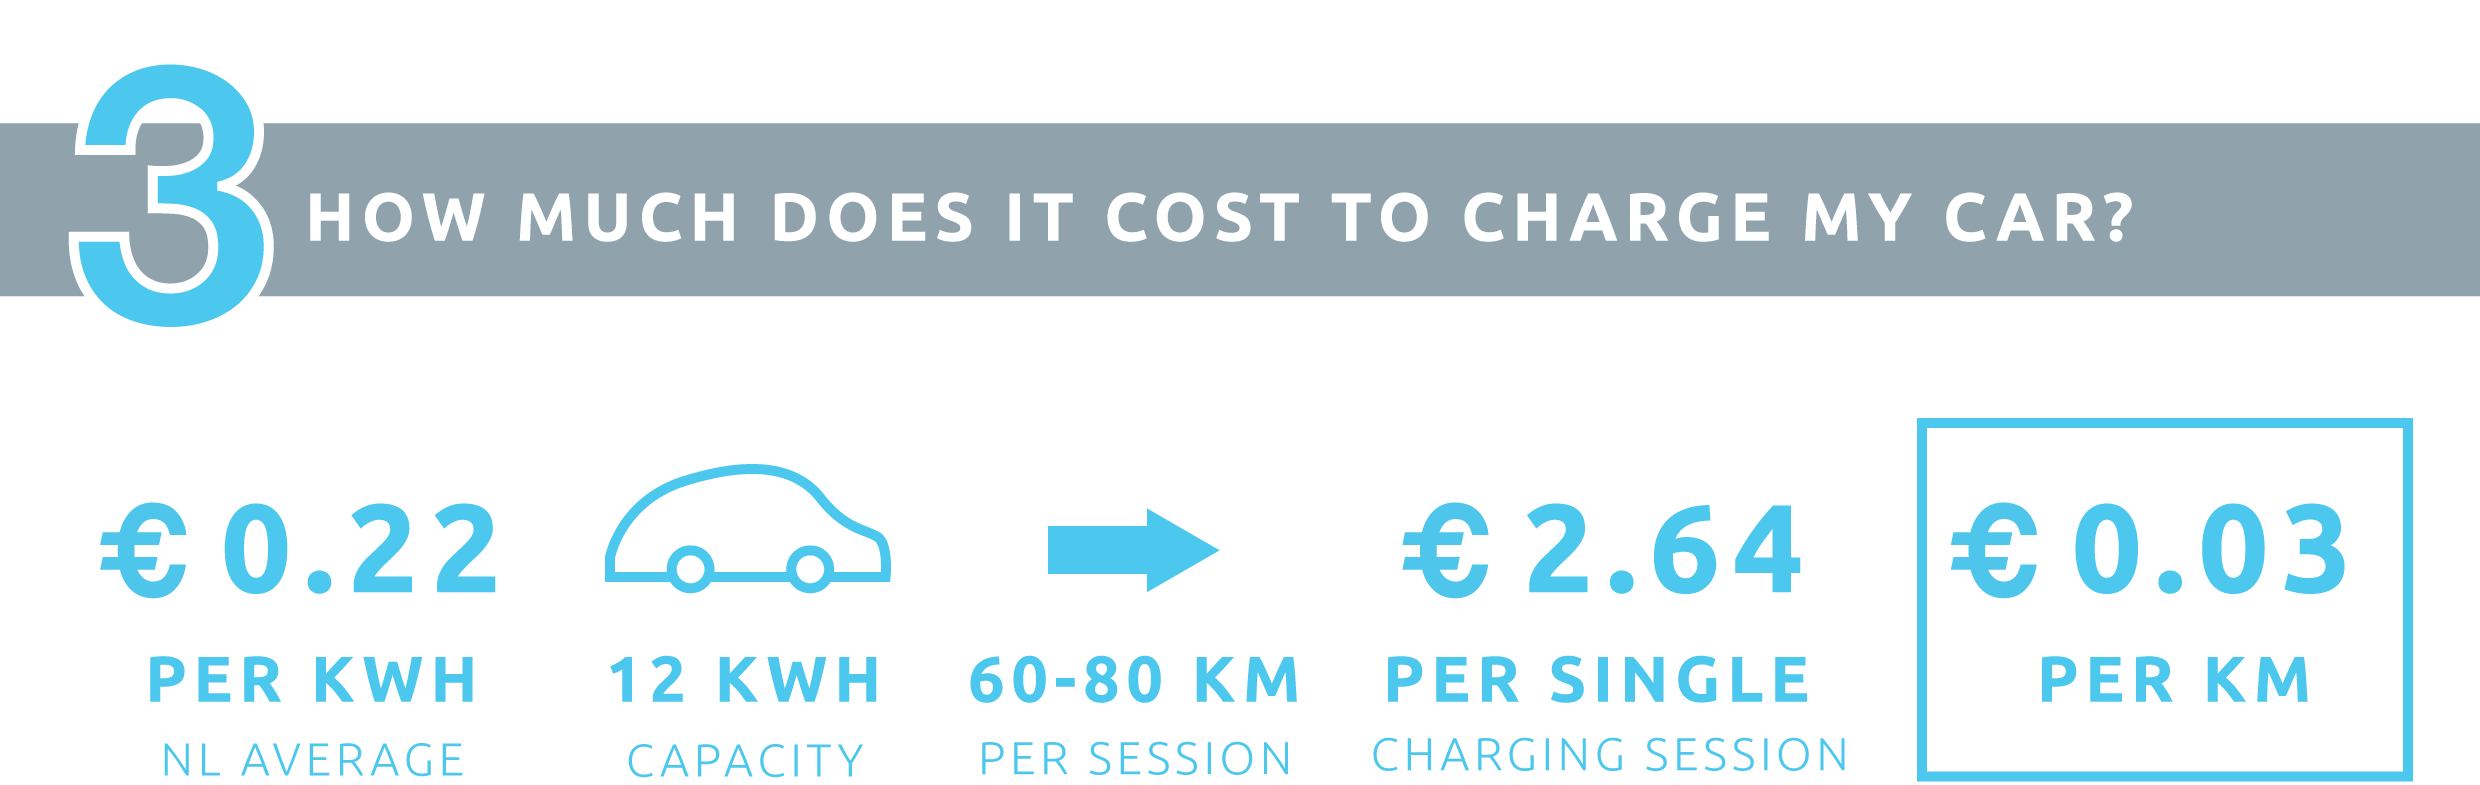 7 FAQs about EV charging